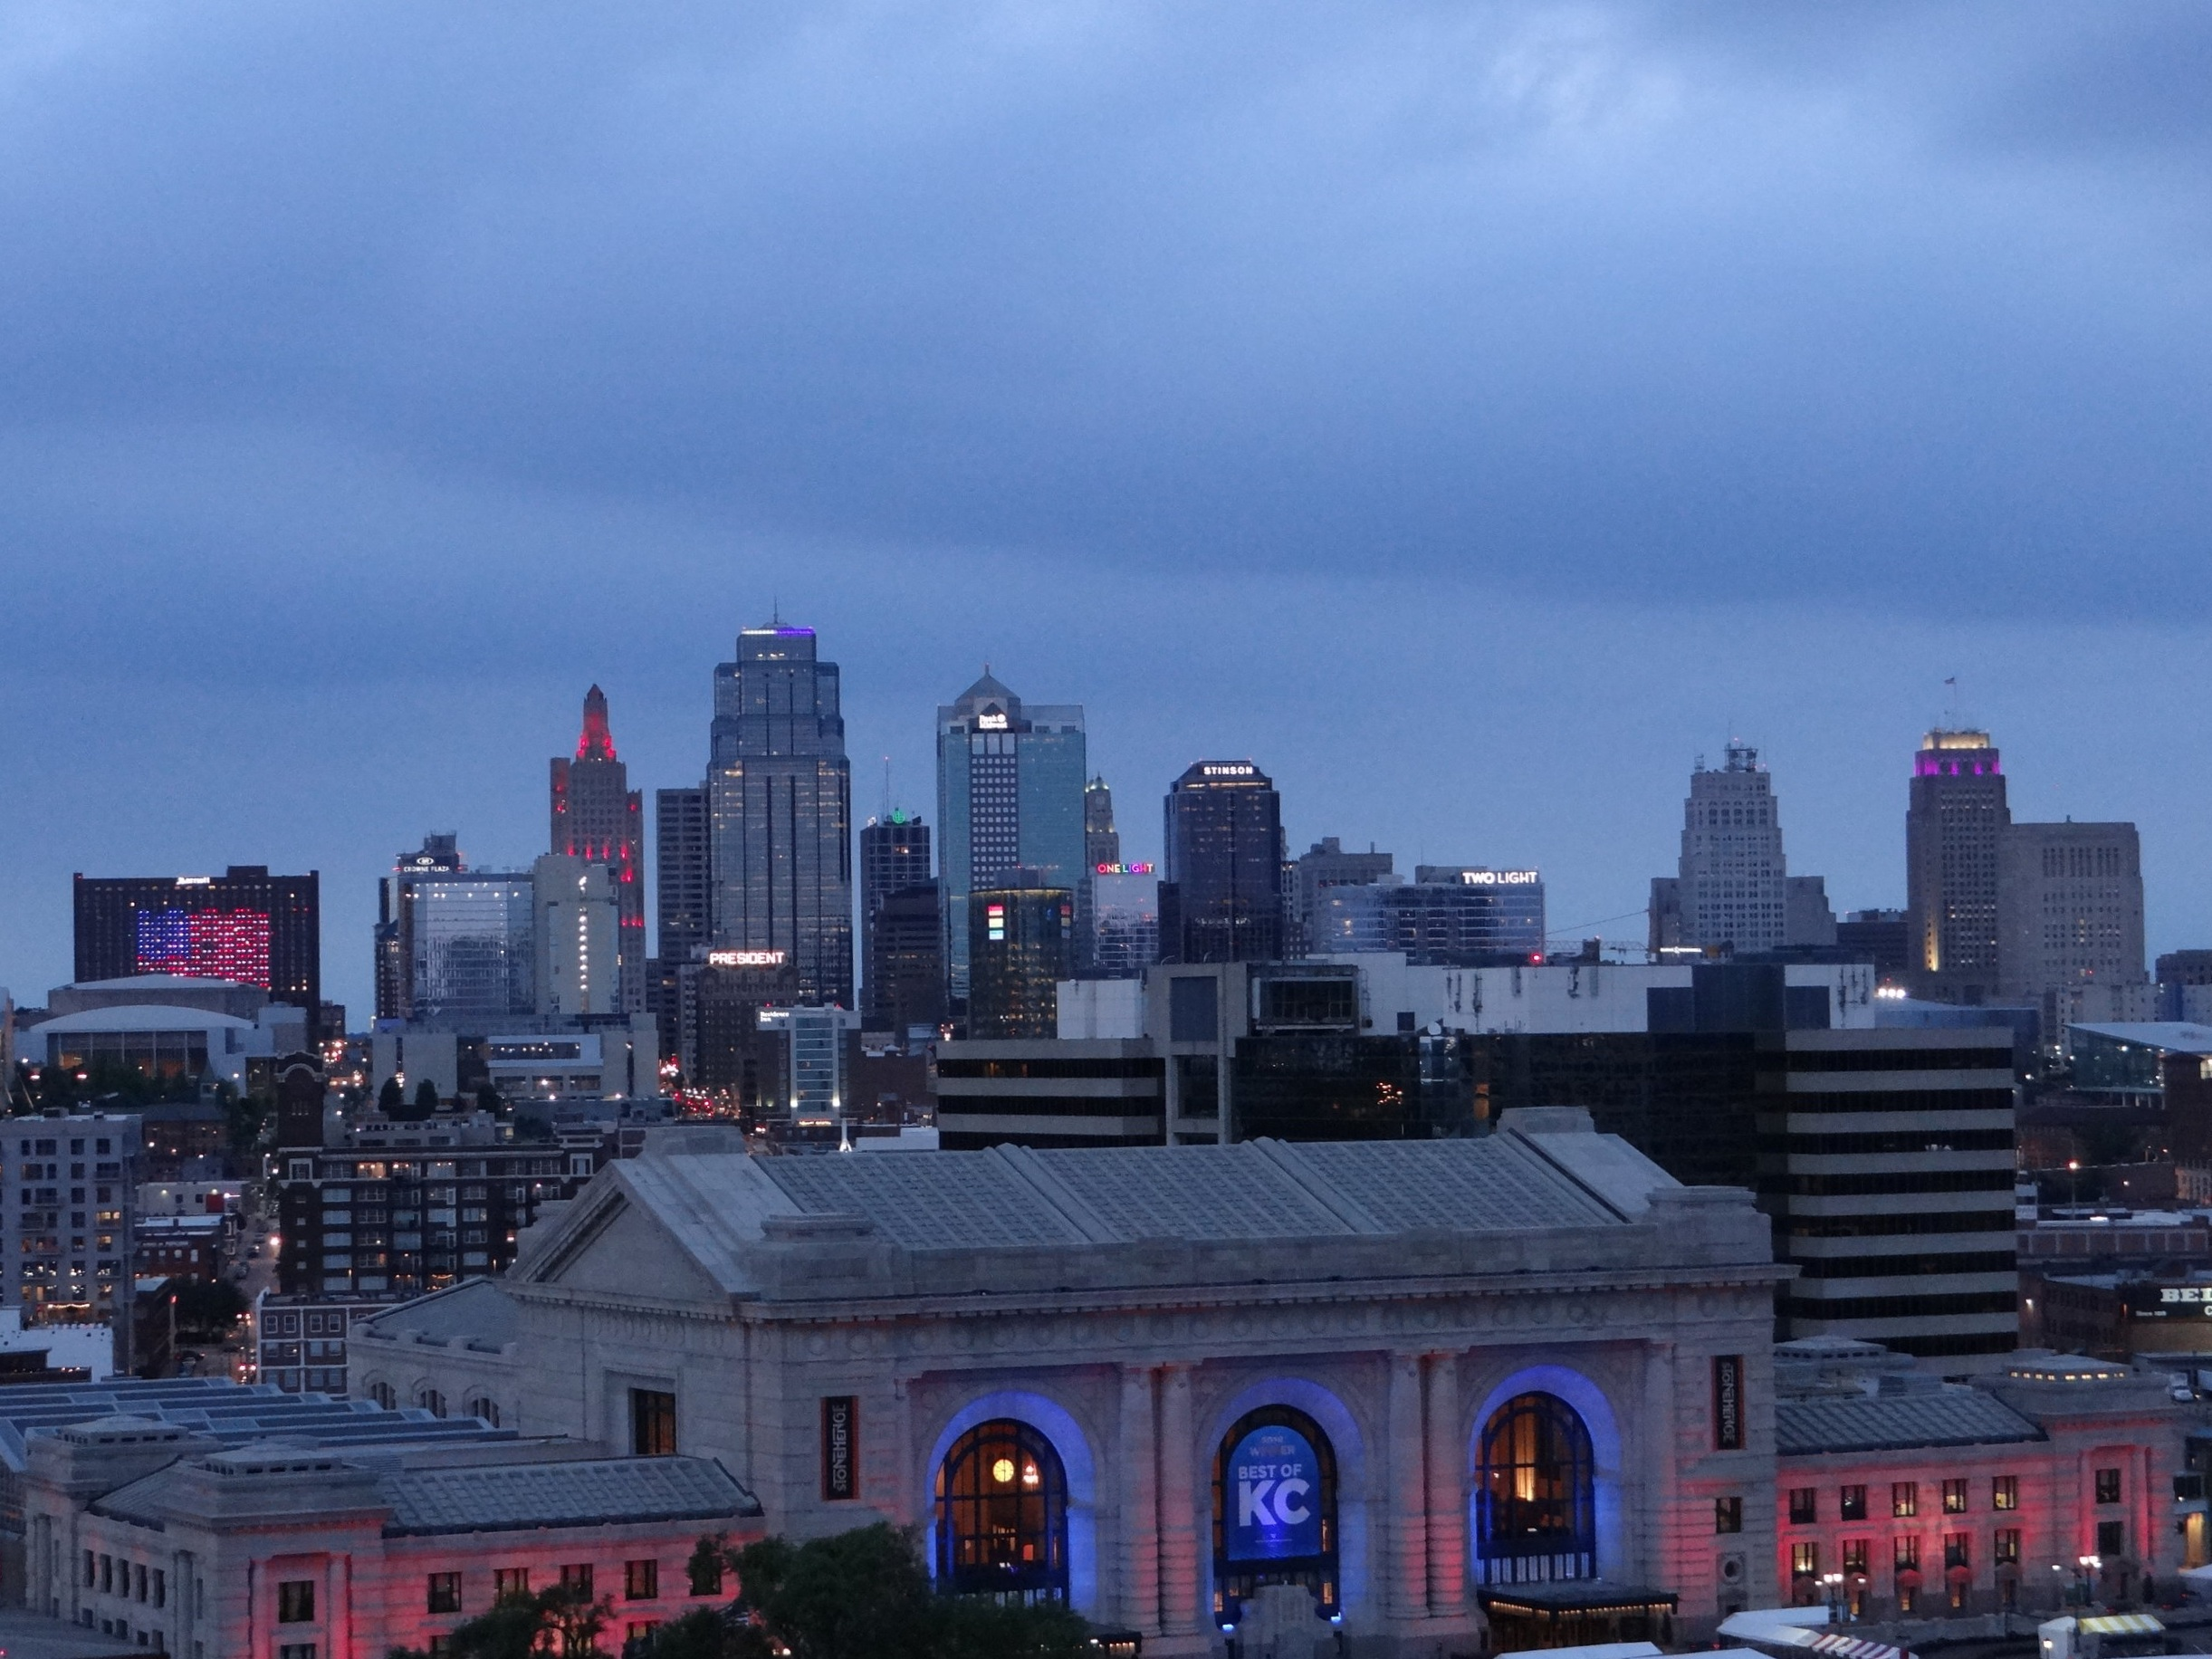 Downtown Kansas City at dusk, seen from the National WW1 Museum and Memorial